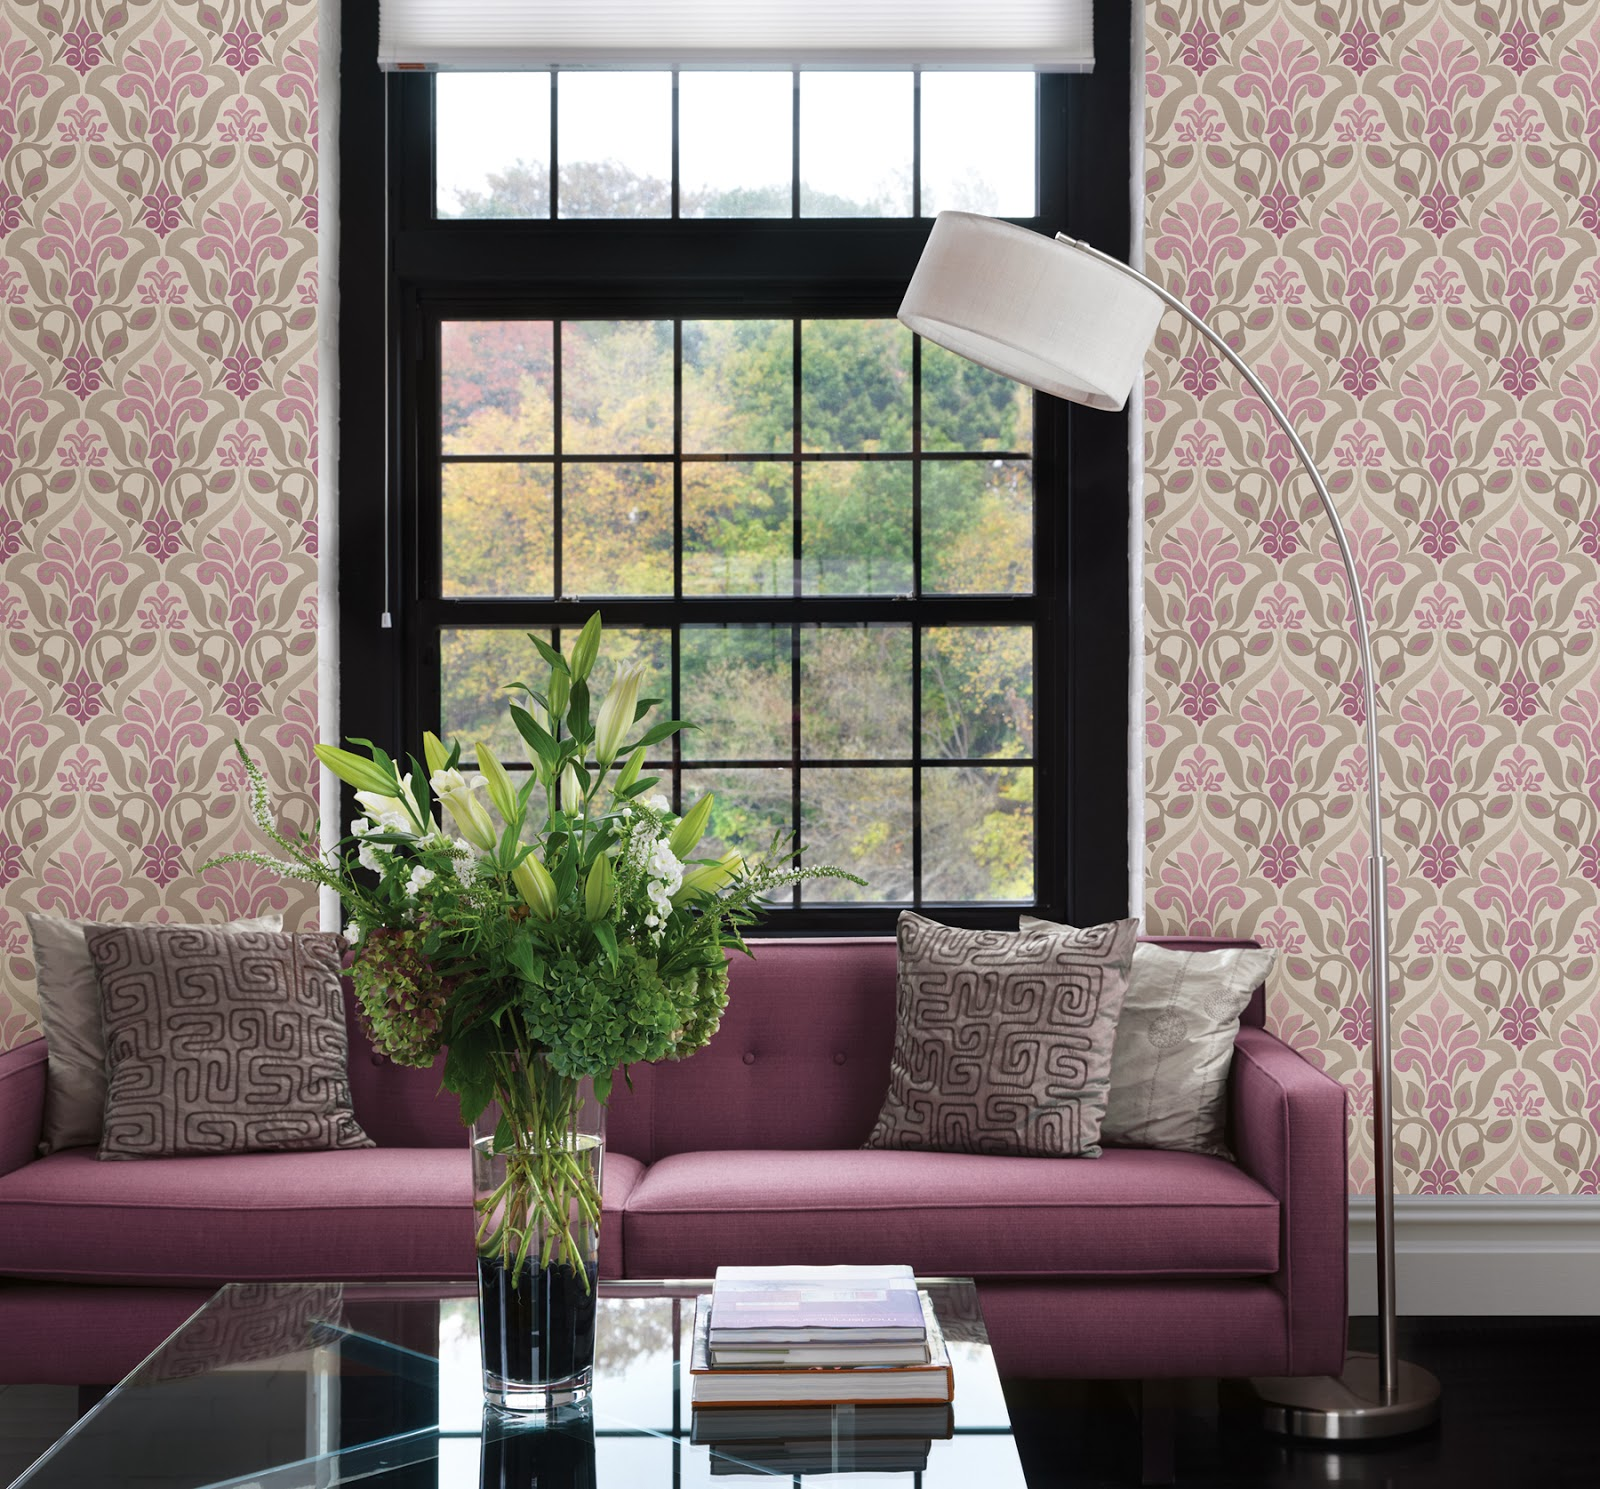 https://www.wallcoveringsforless.com/shoppingcart/prodlist1.CFM?page=_prod_detail.cfm&product_id=43436&startrow=61&search=Simple%20Space%202&pagereturn=_search.cfm